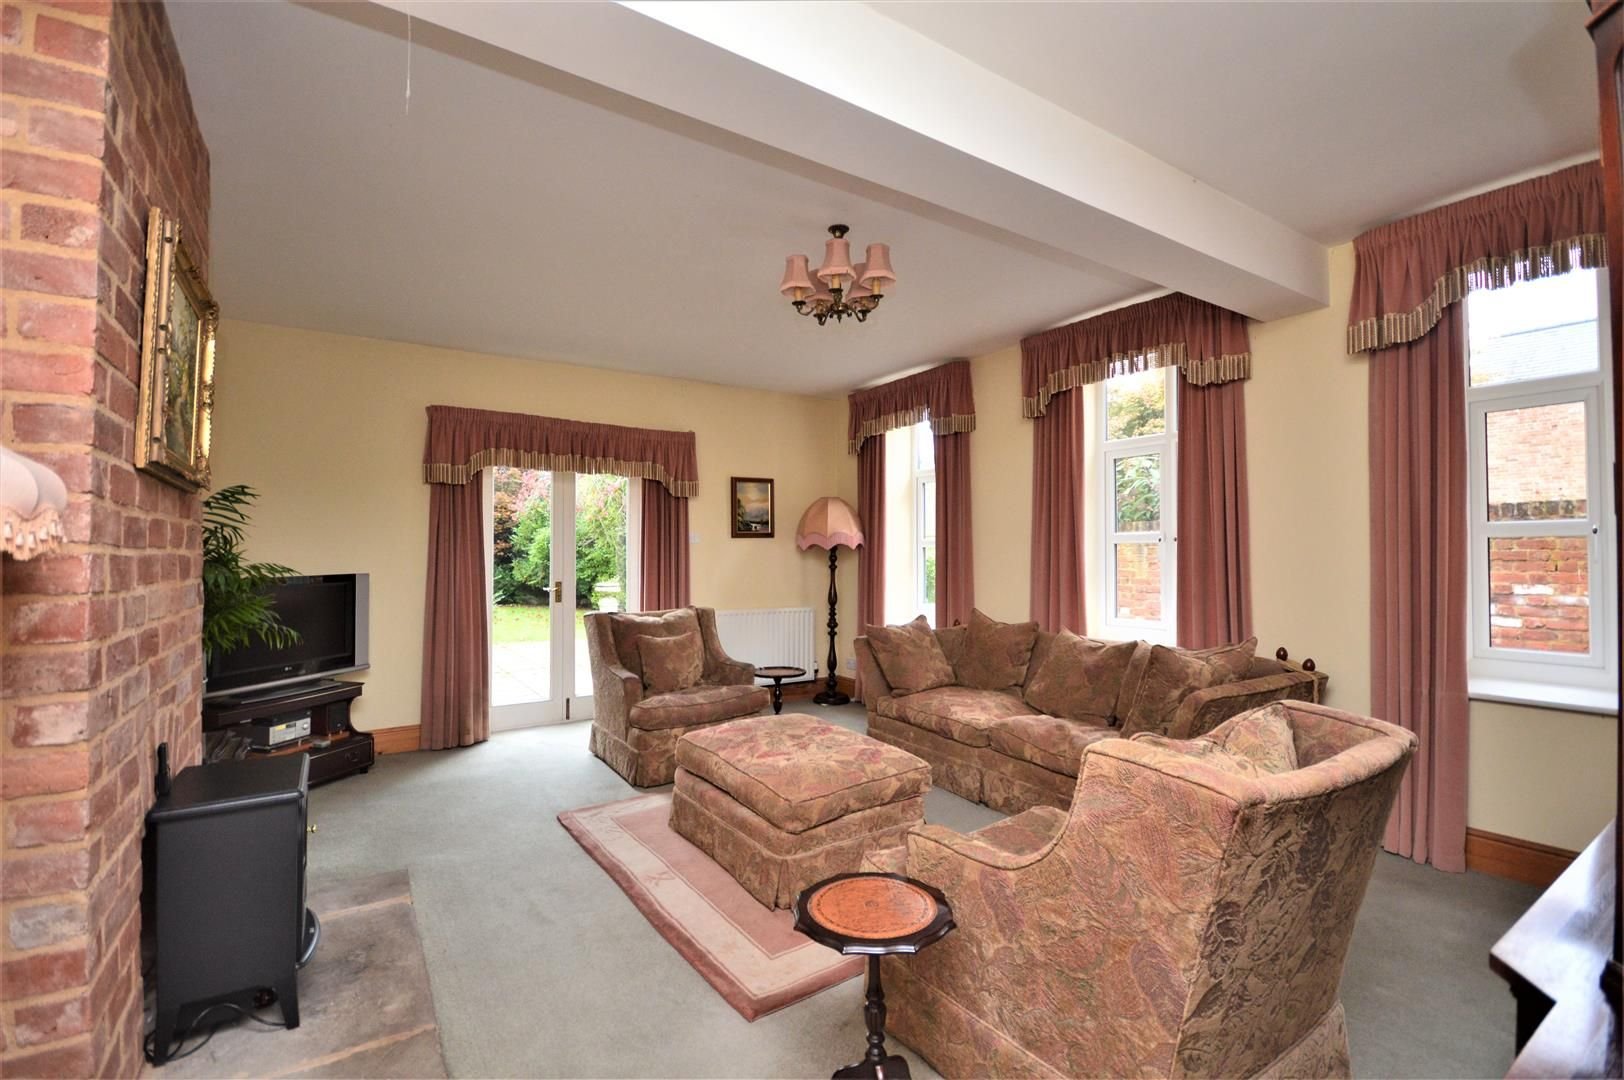 4 bed semi-detached for sale in Nr Madley  - Property Image 7